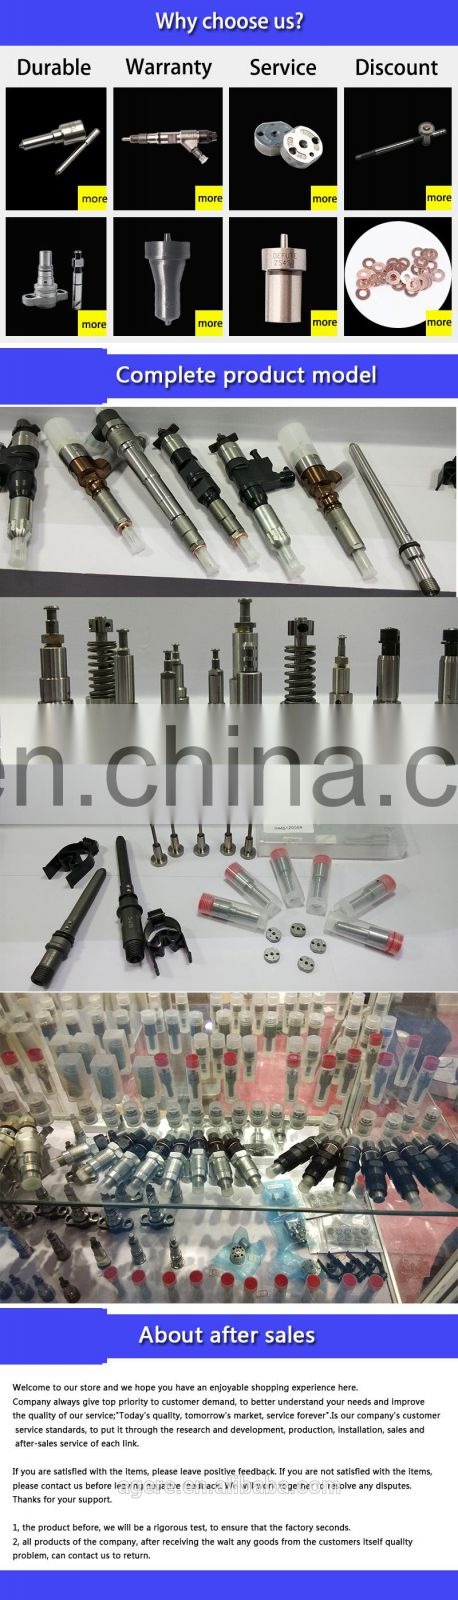 Multifunctional spray nozzles L135PBD Injector Nozzle water mist 893105-8930 injection nozzle